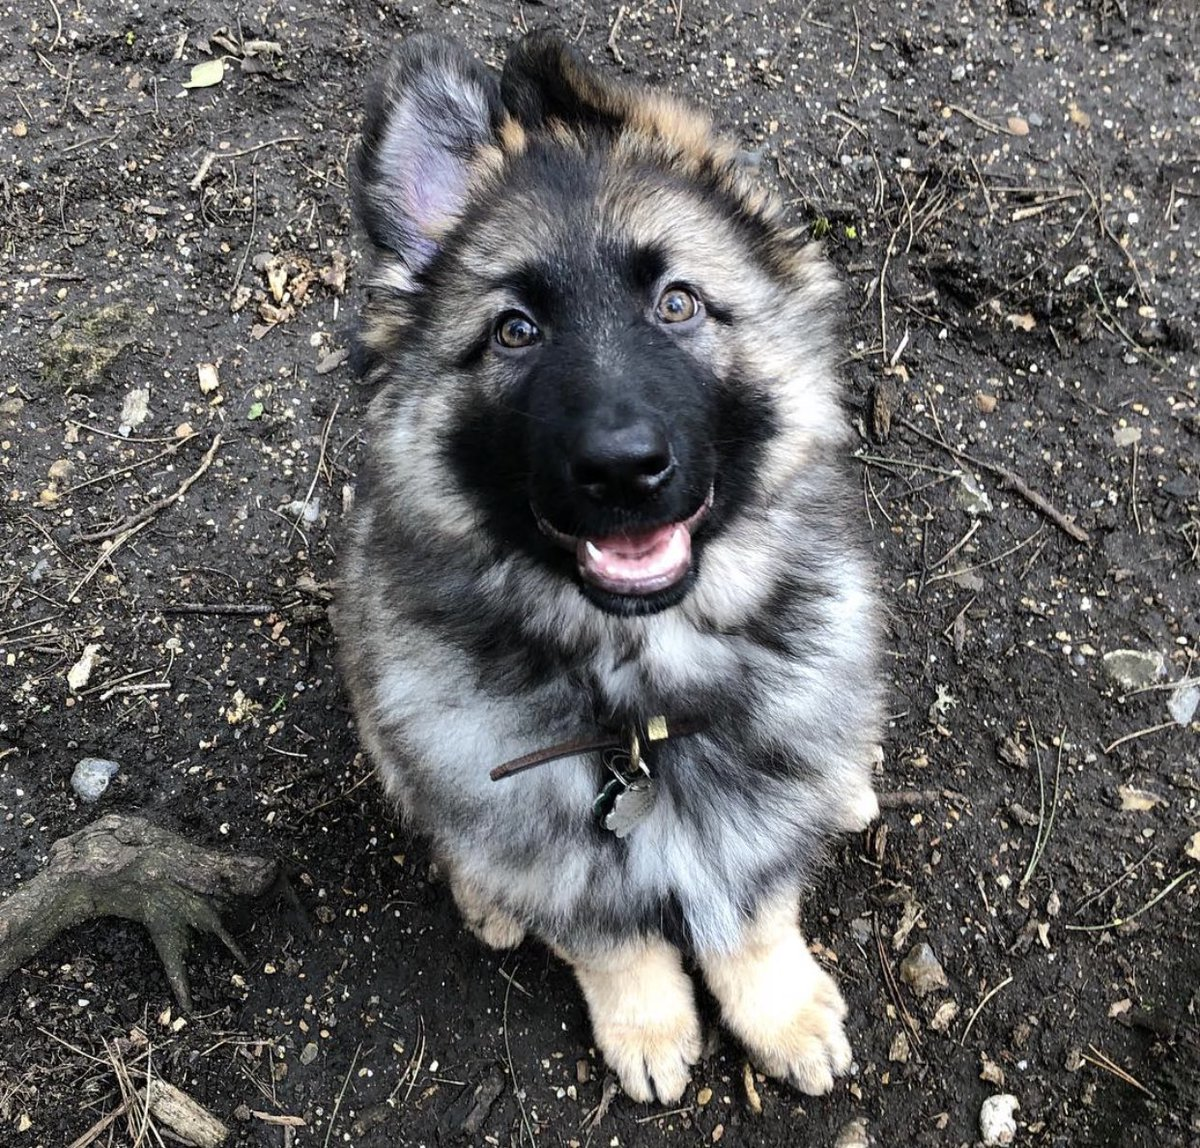 It's #NationalPuppyDay so here's a throwback to me a year ago... #germanshepherd <br>http://pic.twitter.com/lFlunSCNsa